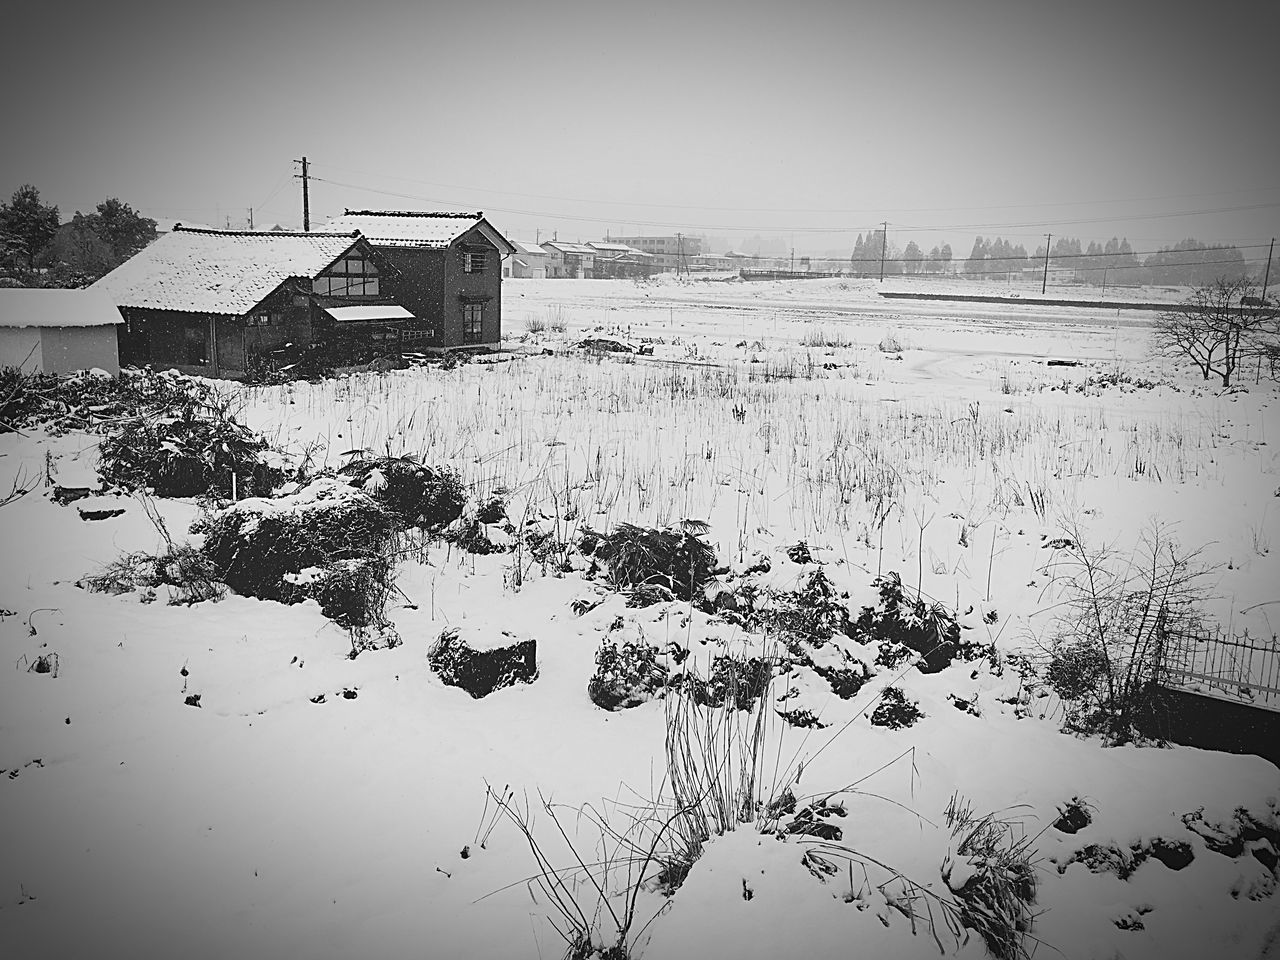 Japan Toyama Snowy District Snow The Country Rice Field White_and_black EyeEm Best Shots EyeEm Gallery EyeEm Nature Lover